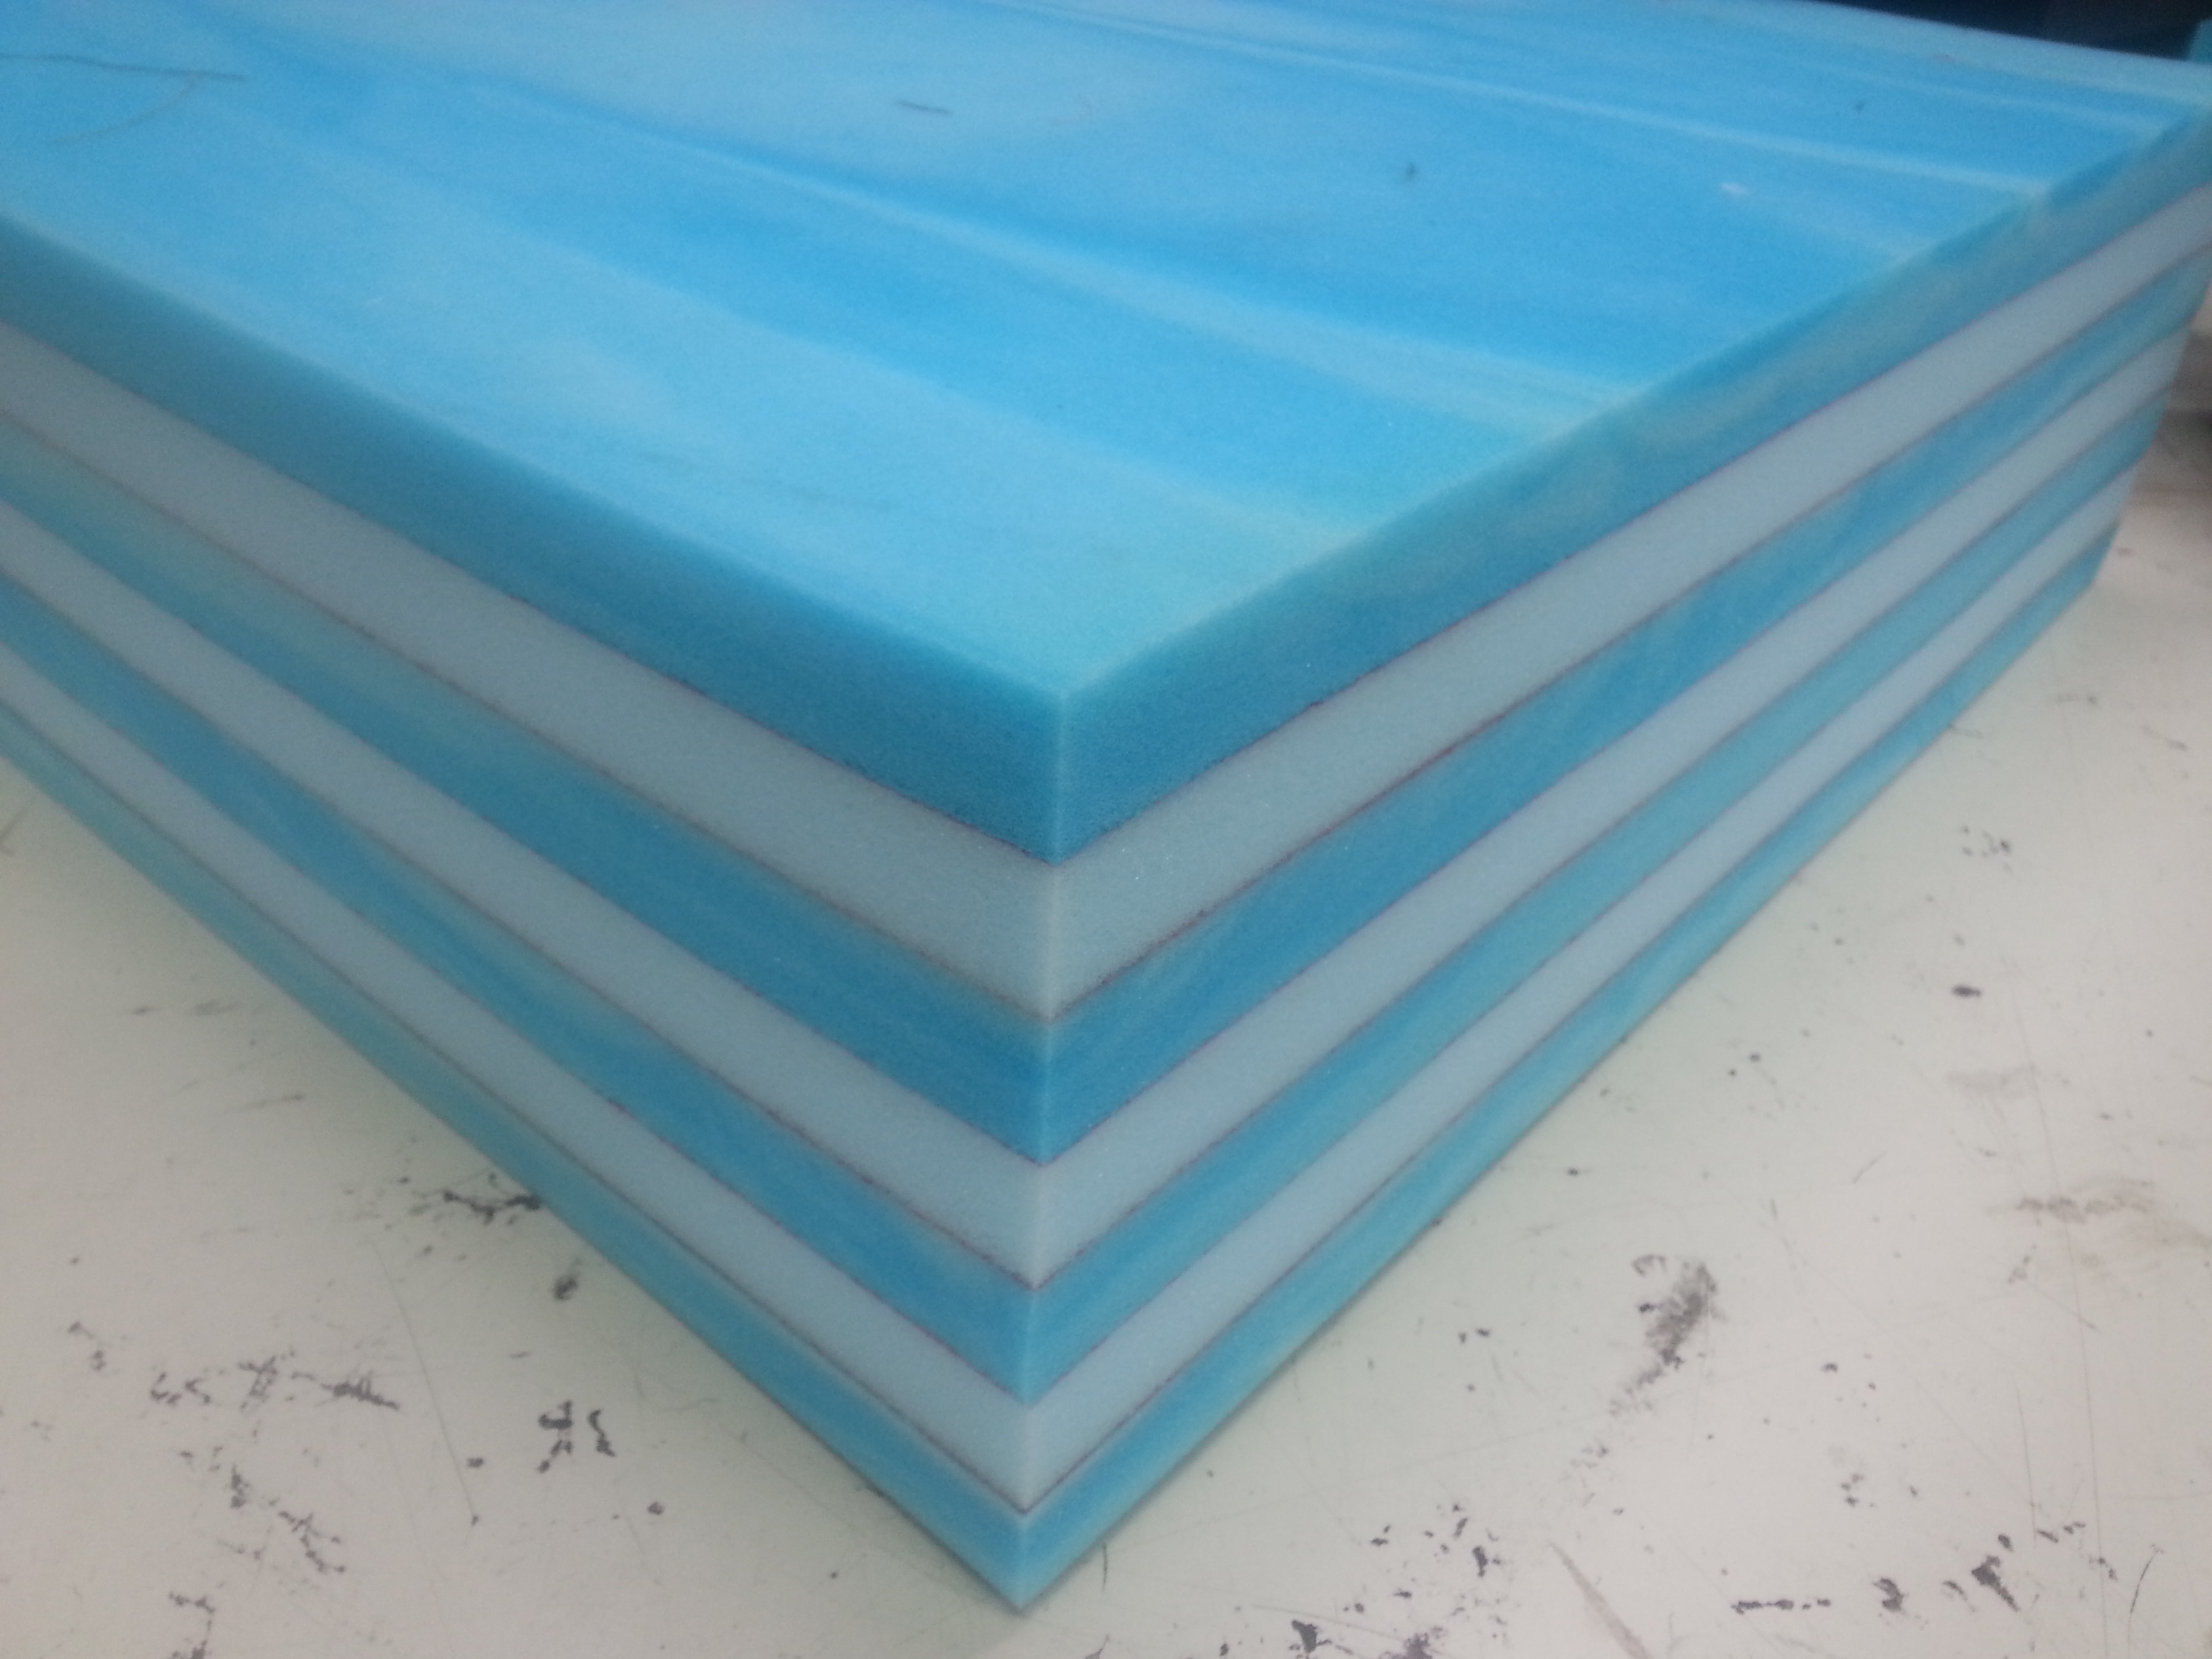 memory and firm foam layers